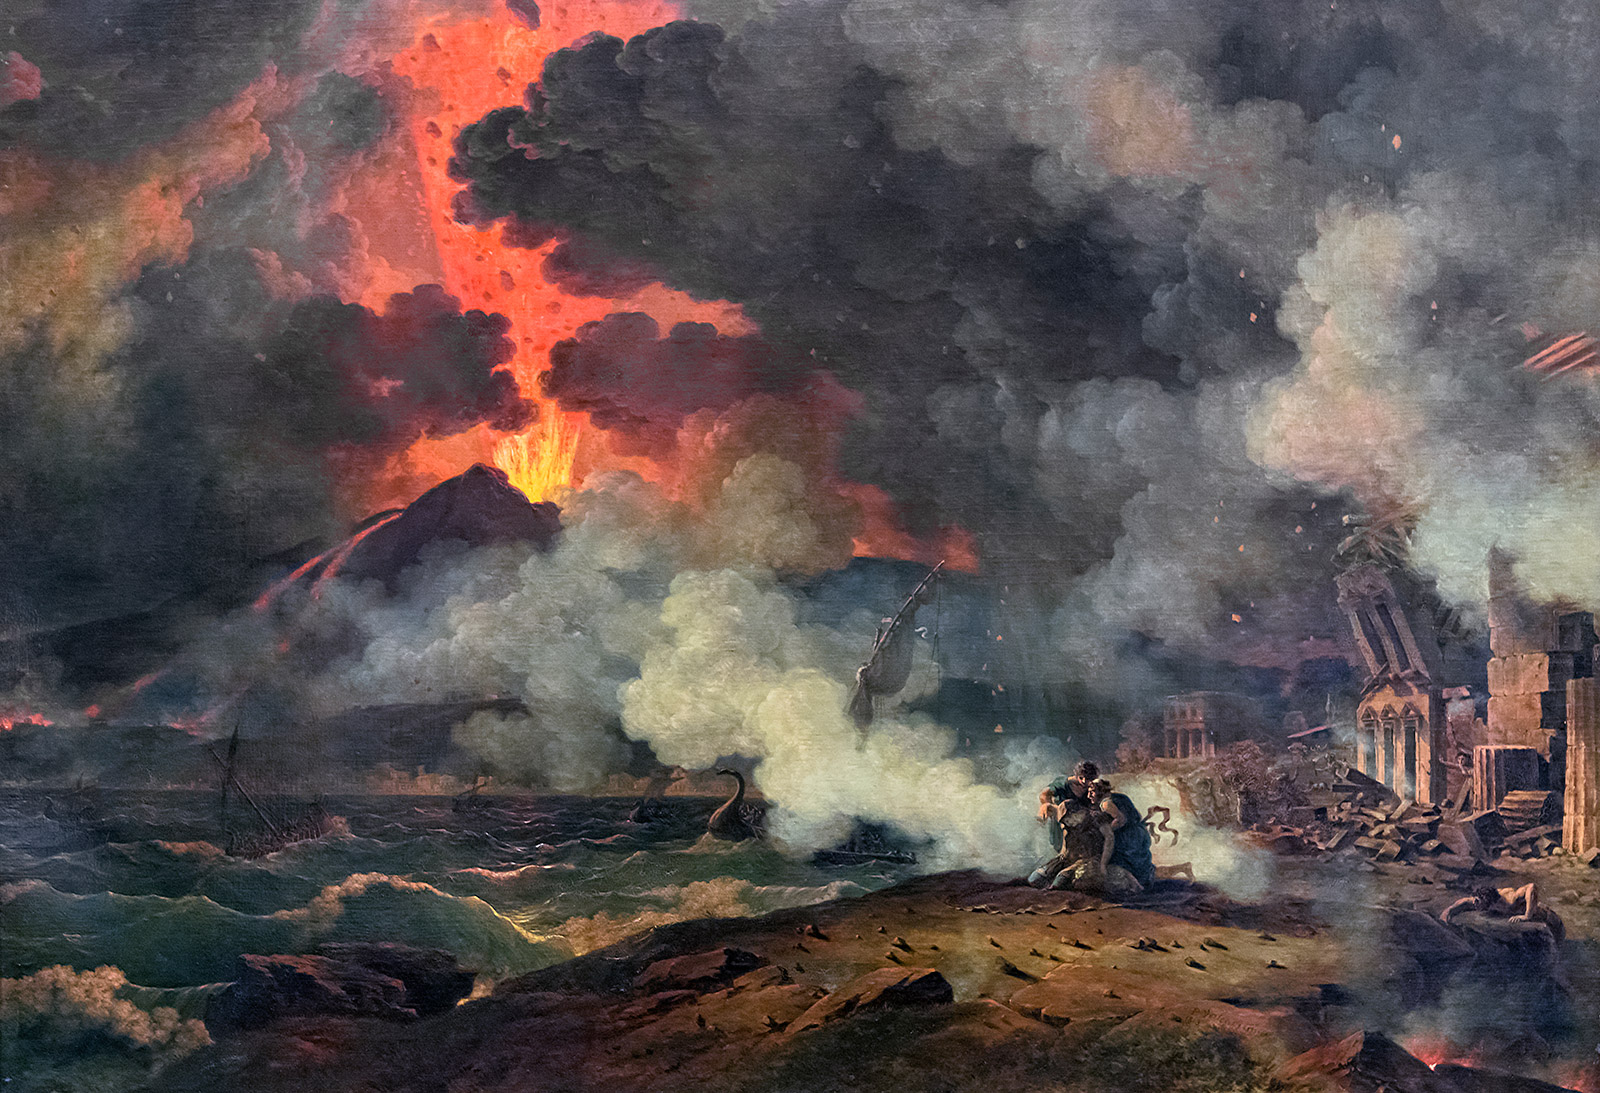 Dramatic painting shows people cowering from the lava and ash of a volcano in the background